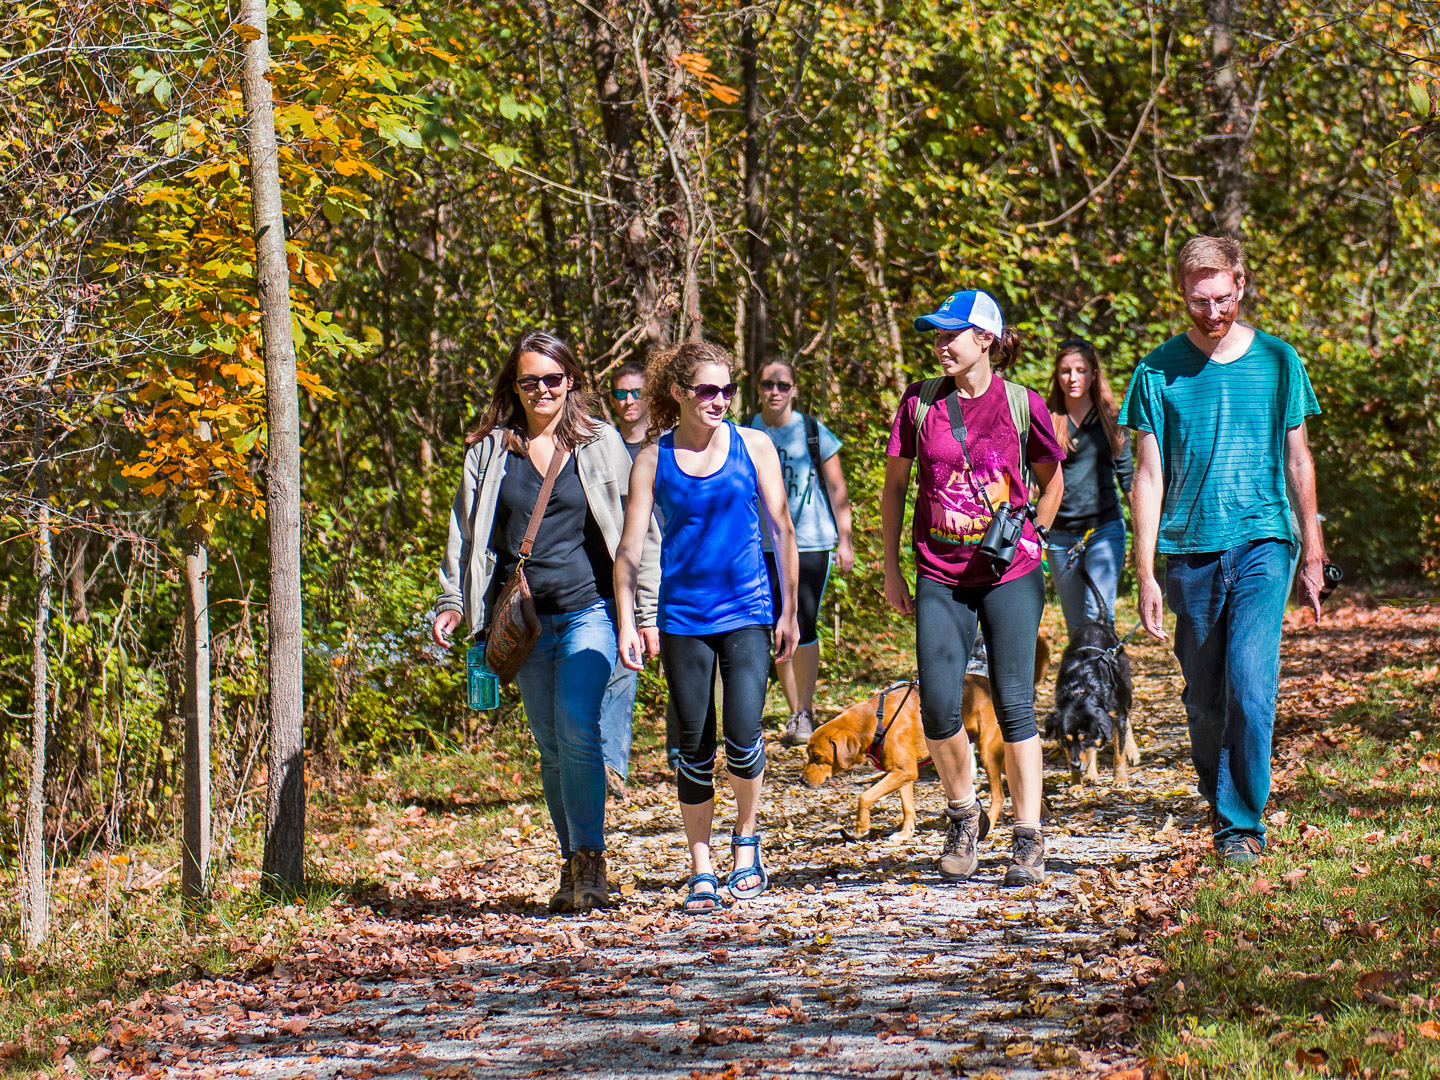 Visitors walk their dogs in the fall sunshine at Battelle Darby Creek. (John Nixon)